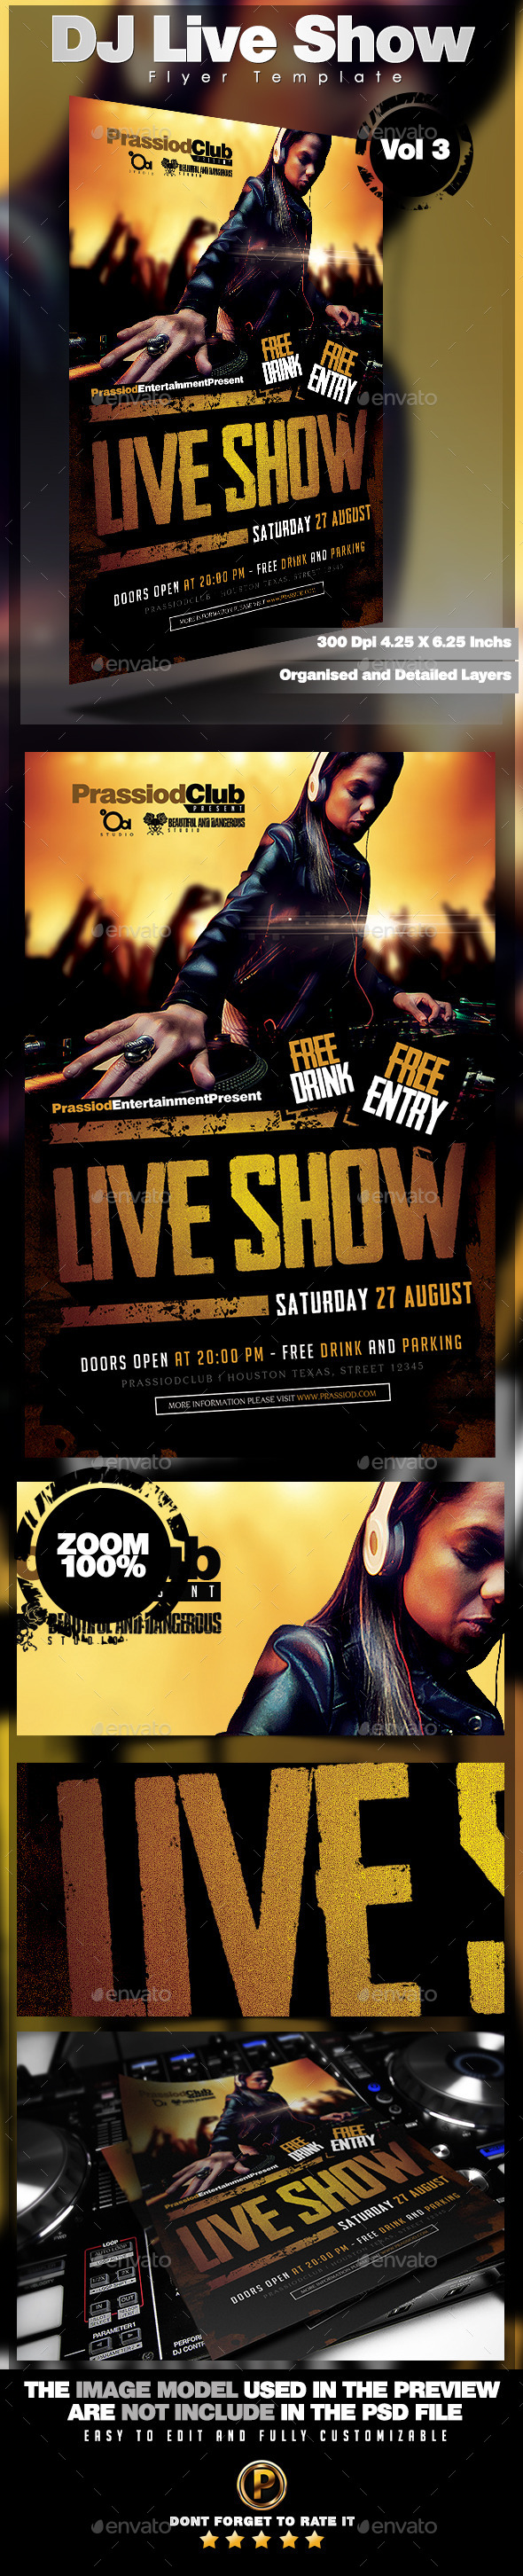 DJ Live Show Flyer Template Vol 3 - Clubs & Parties Events